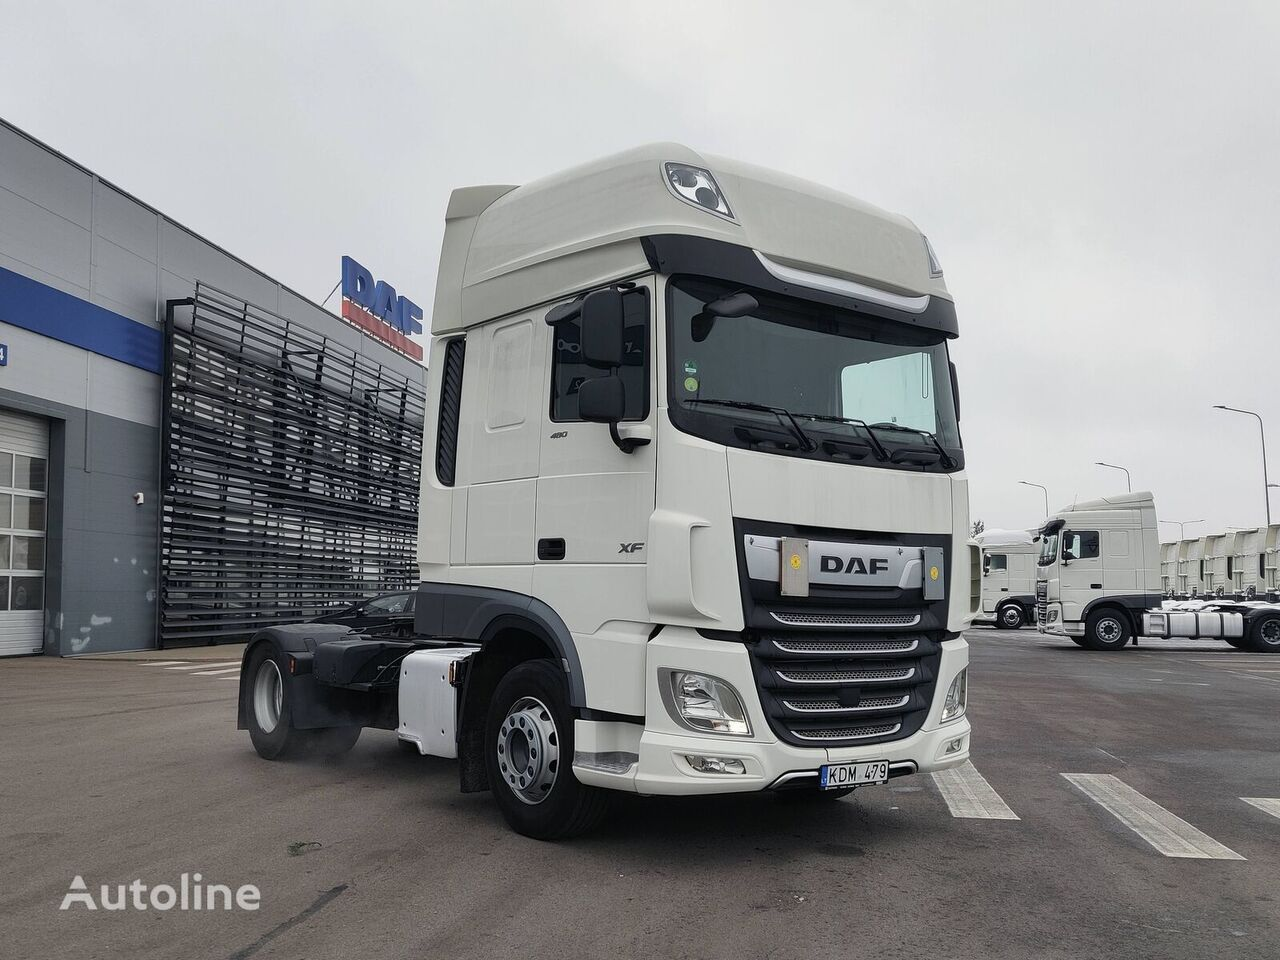 DAF XF 480 FT tractora